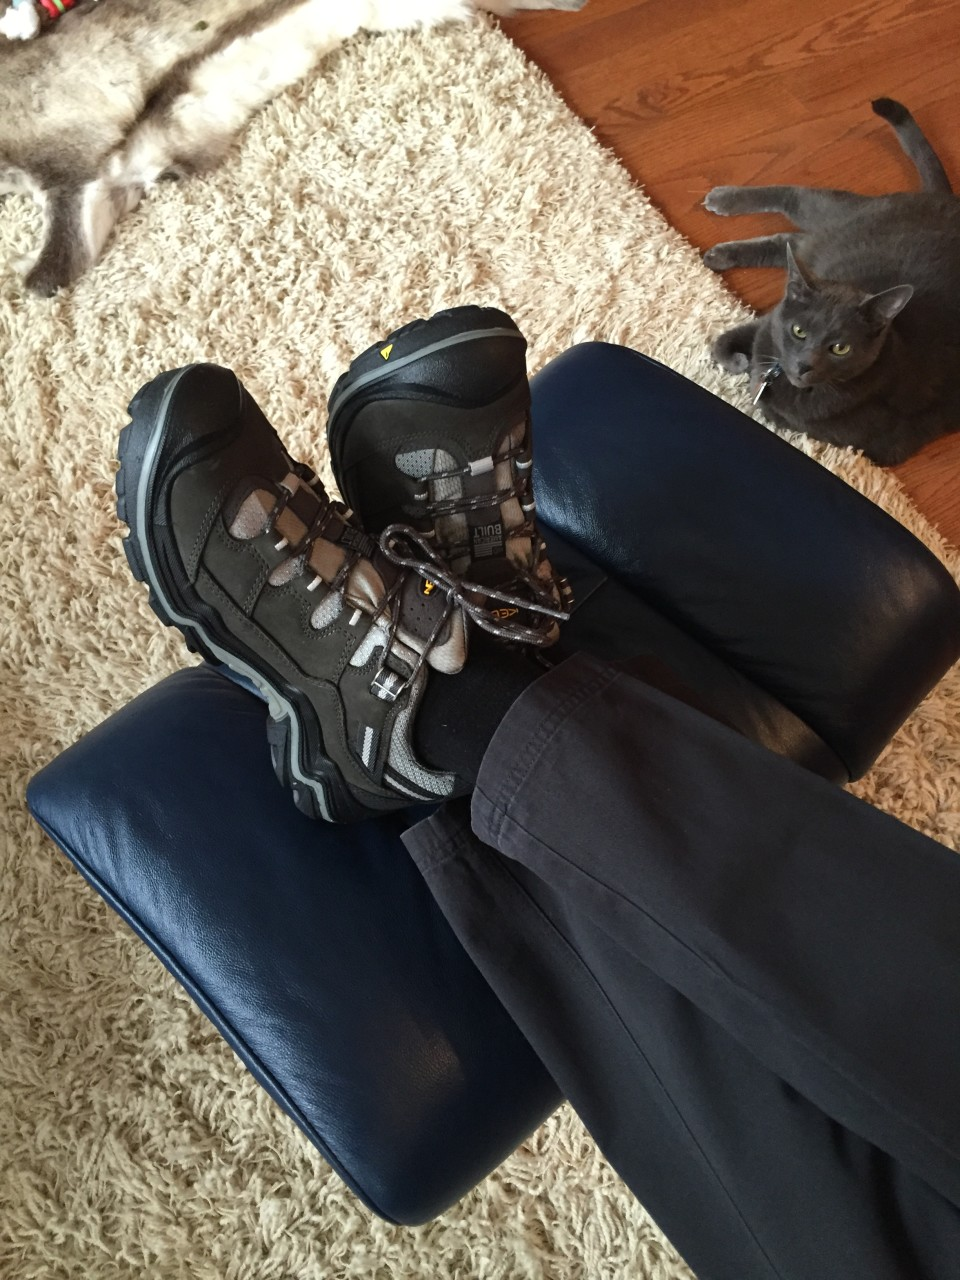 Travel Essentials for the frequent world traveler : Our cat Beaudelaire (Beau for short) admiring my Keen waterproof hiking shoes